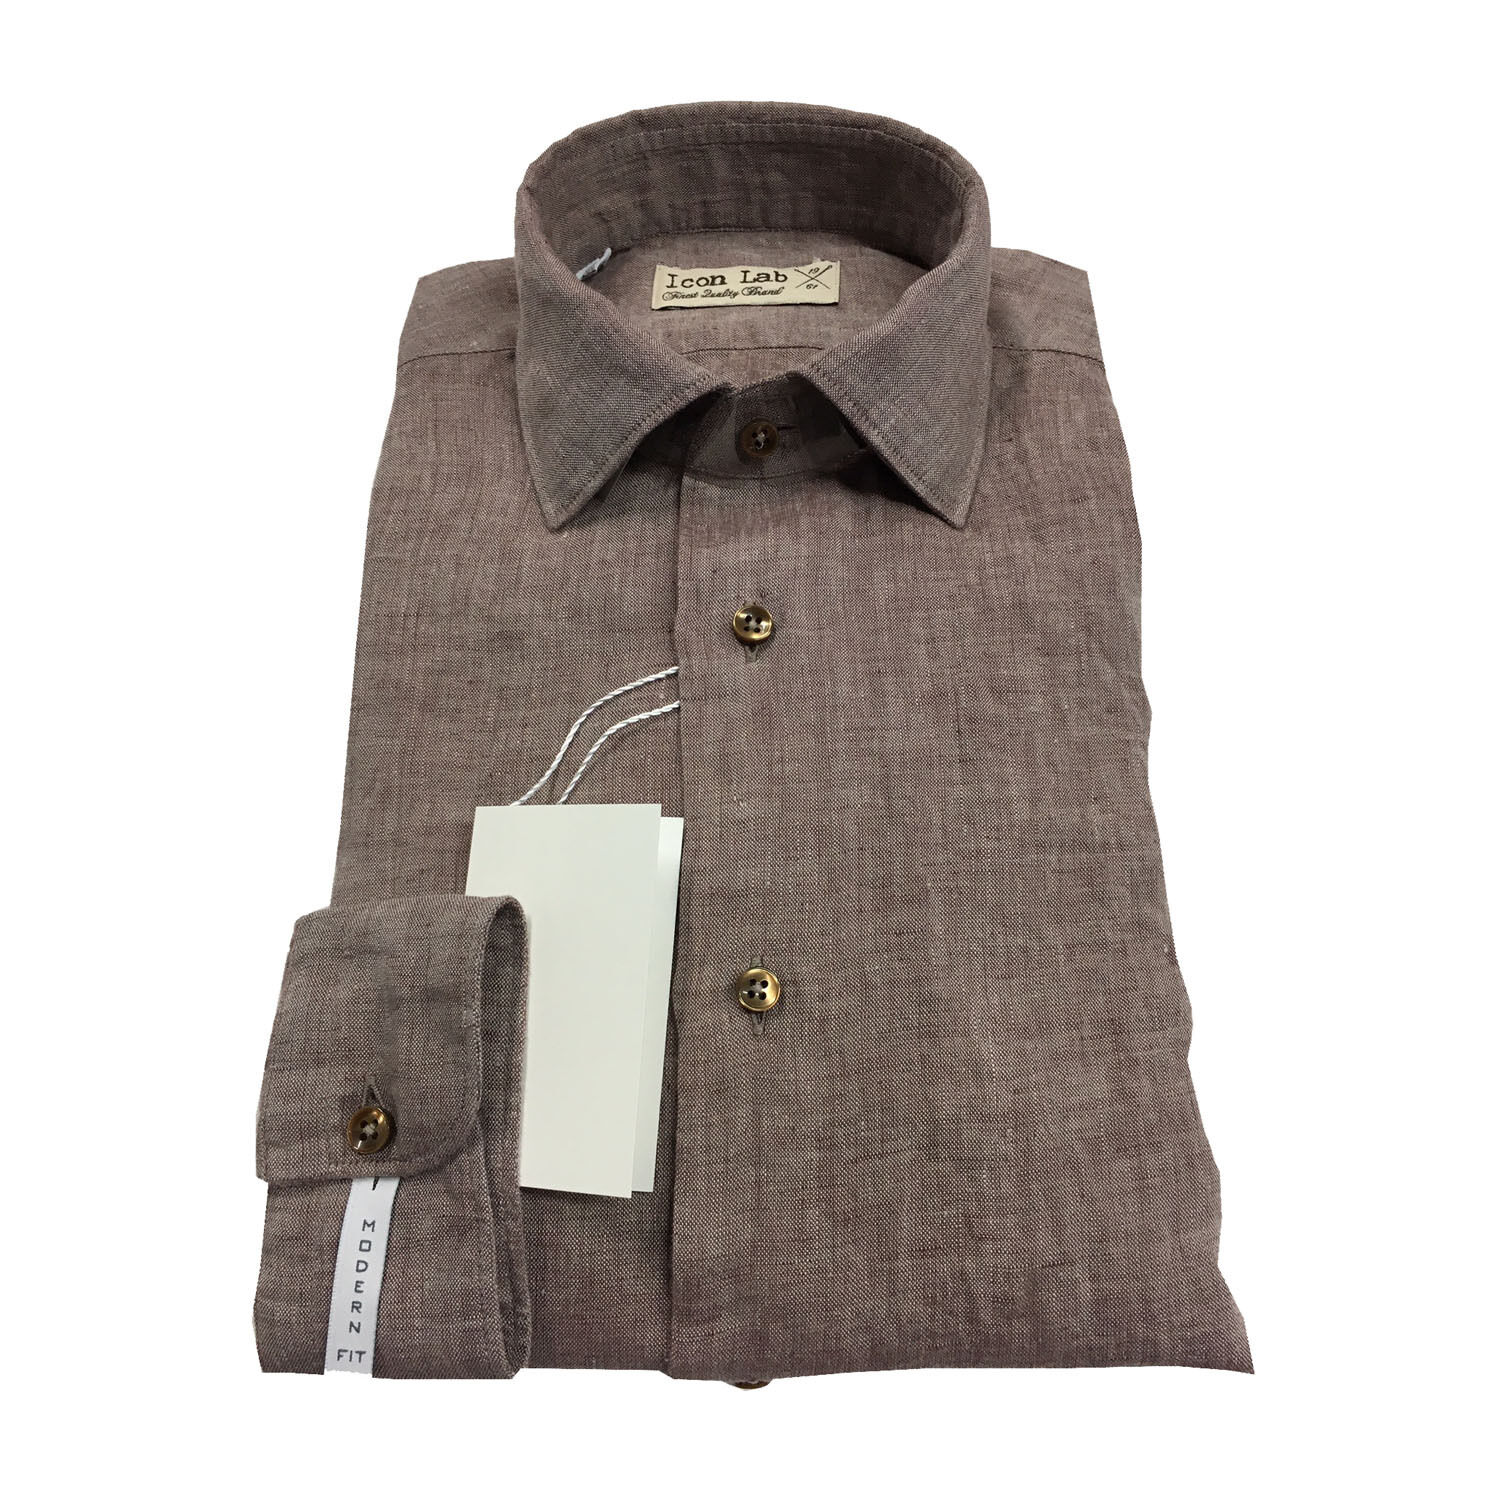 ICON LAB 1961 men's shirts dark brown washed long sleeve 100% linen fit slim